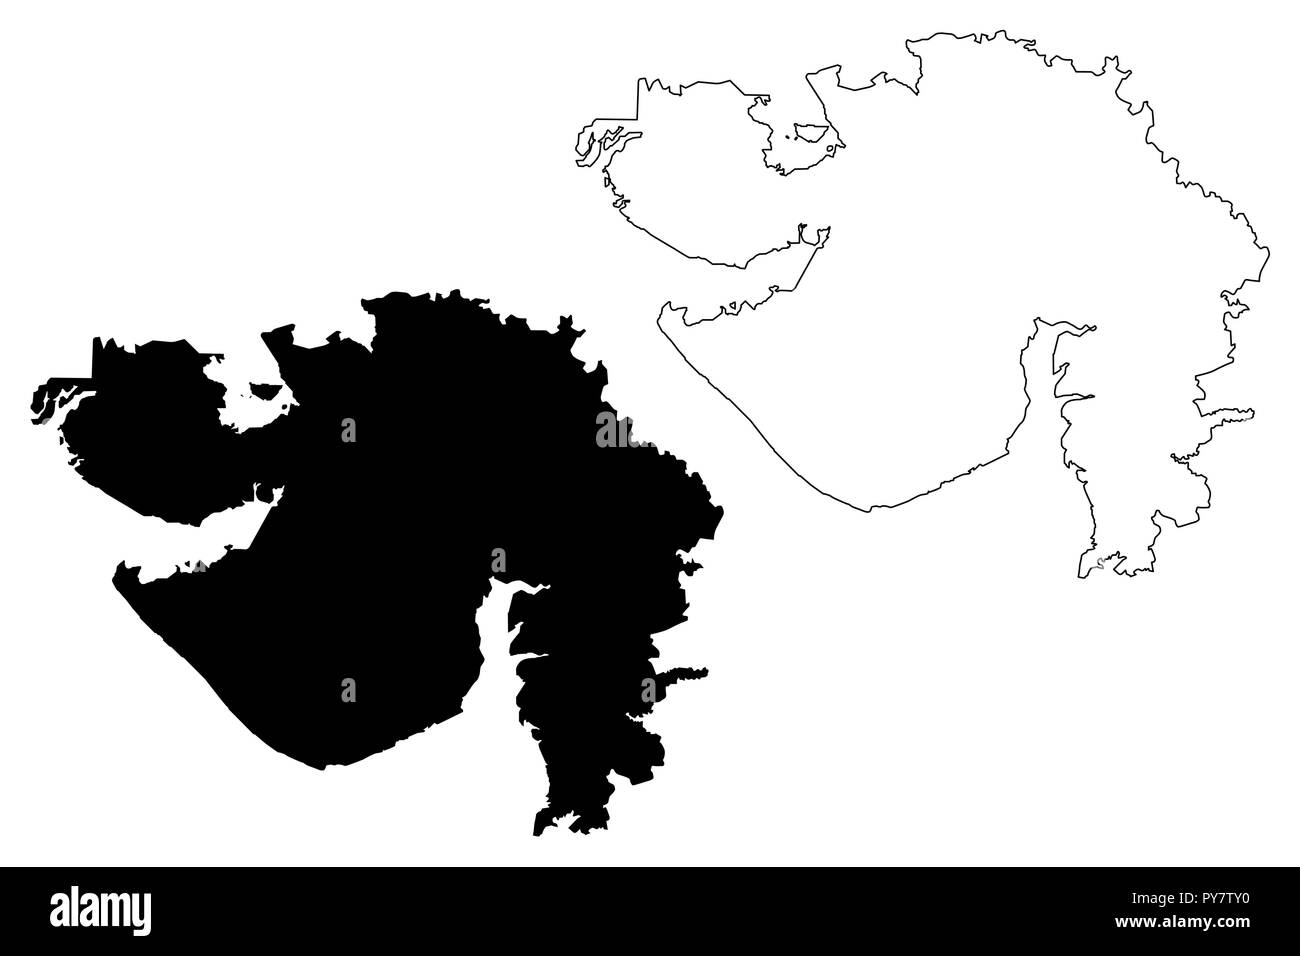 Gujarat (States and union territories of India, Federated states, Republic of India) map vector illustration, scribble sketch Gujarat state map - Stock Vector